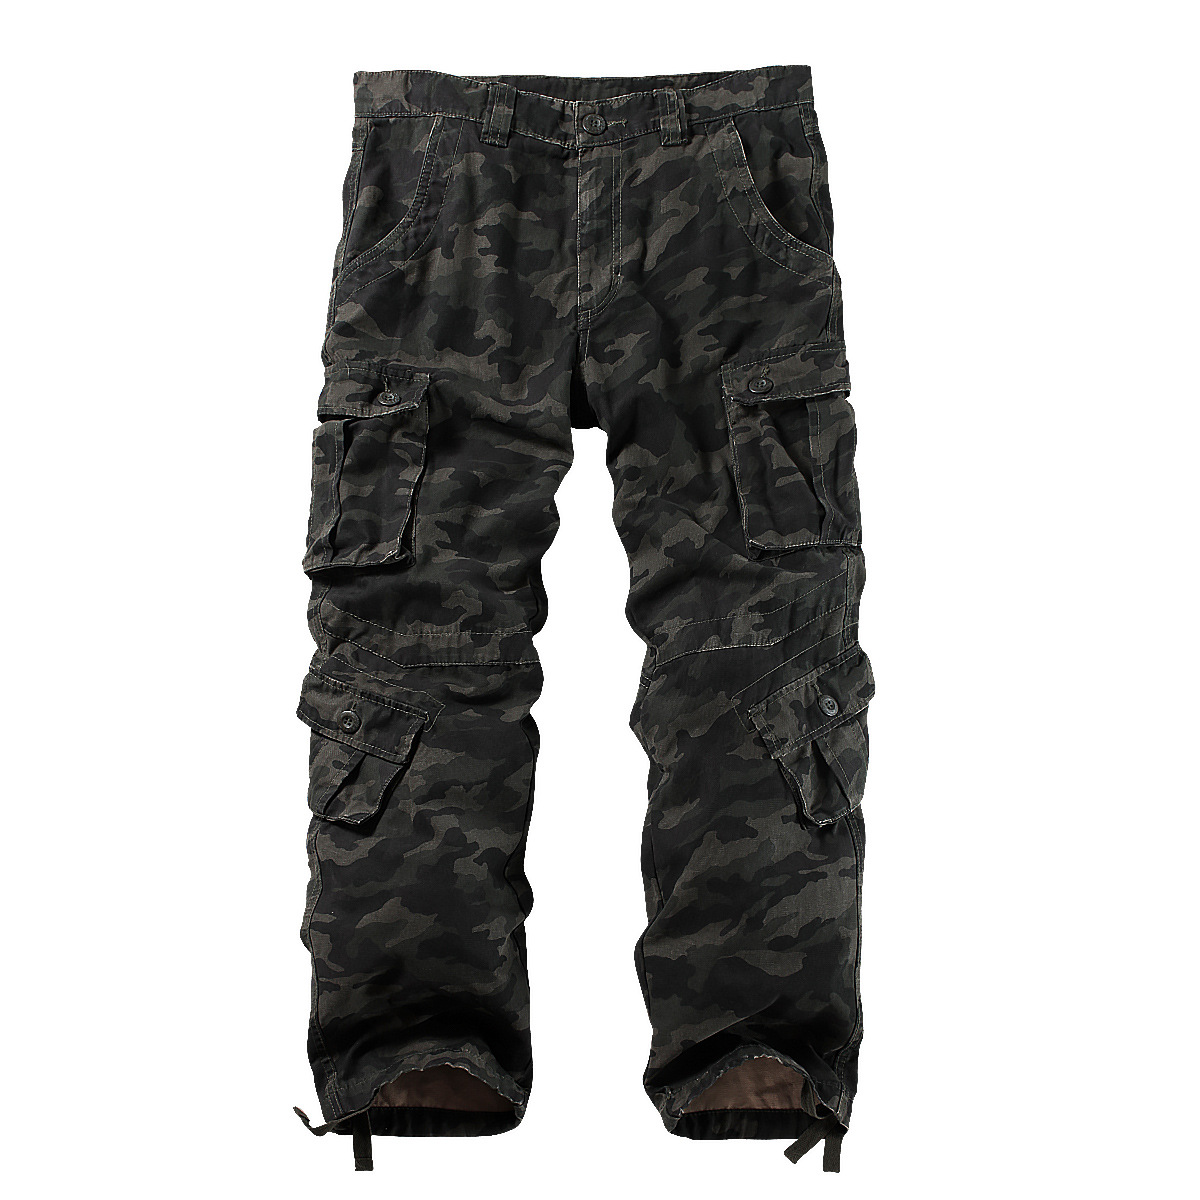 8 Pockets Men's Cotton Tactical Cargo Pants  Casual Work Combat Trousers Male Military Army Camo Cargo Pants Plus Size 40 42 44